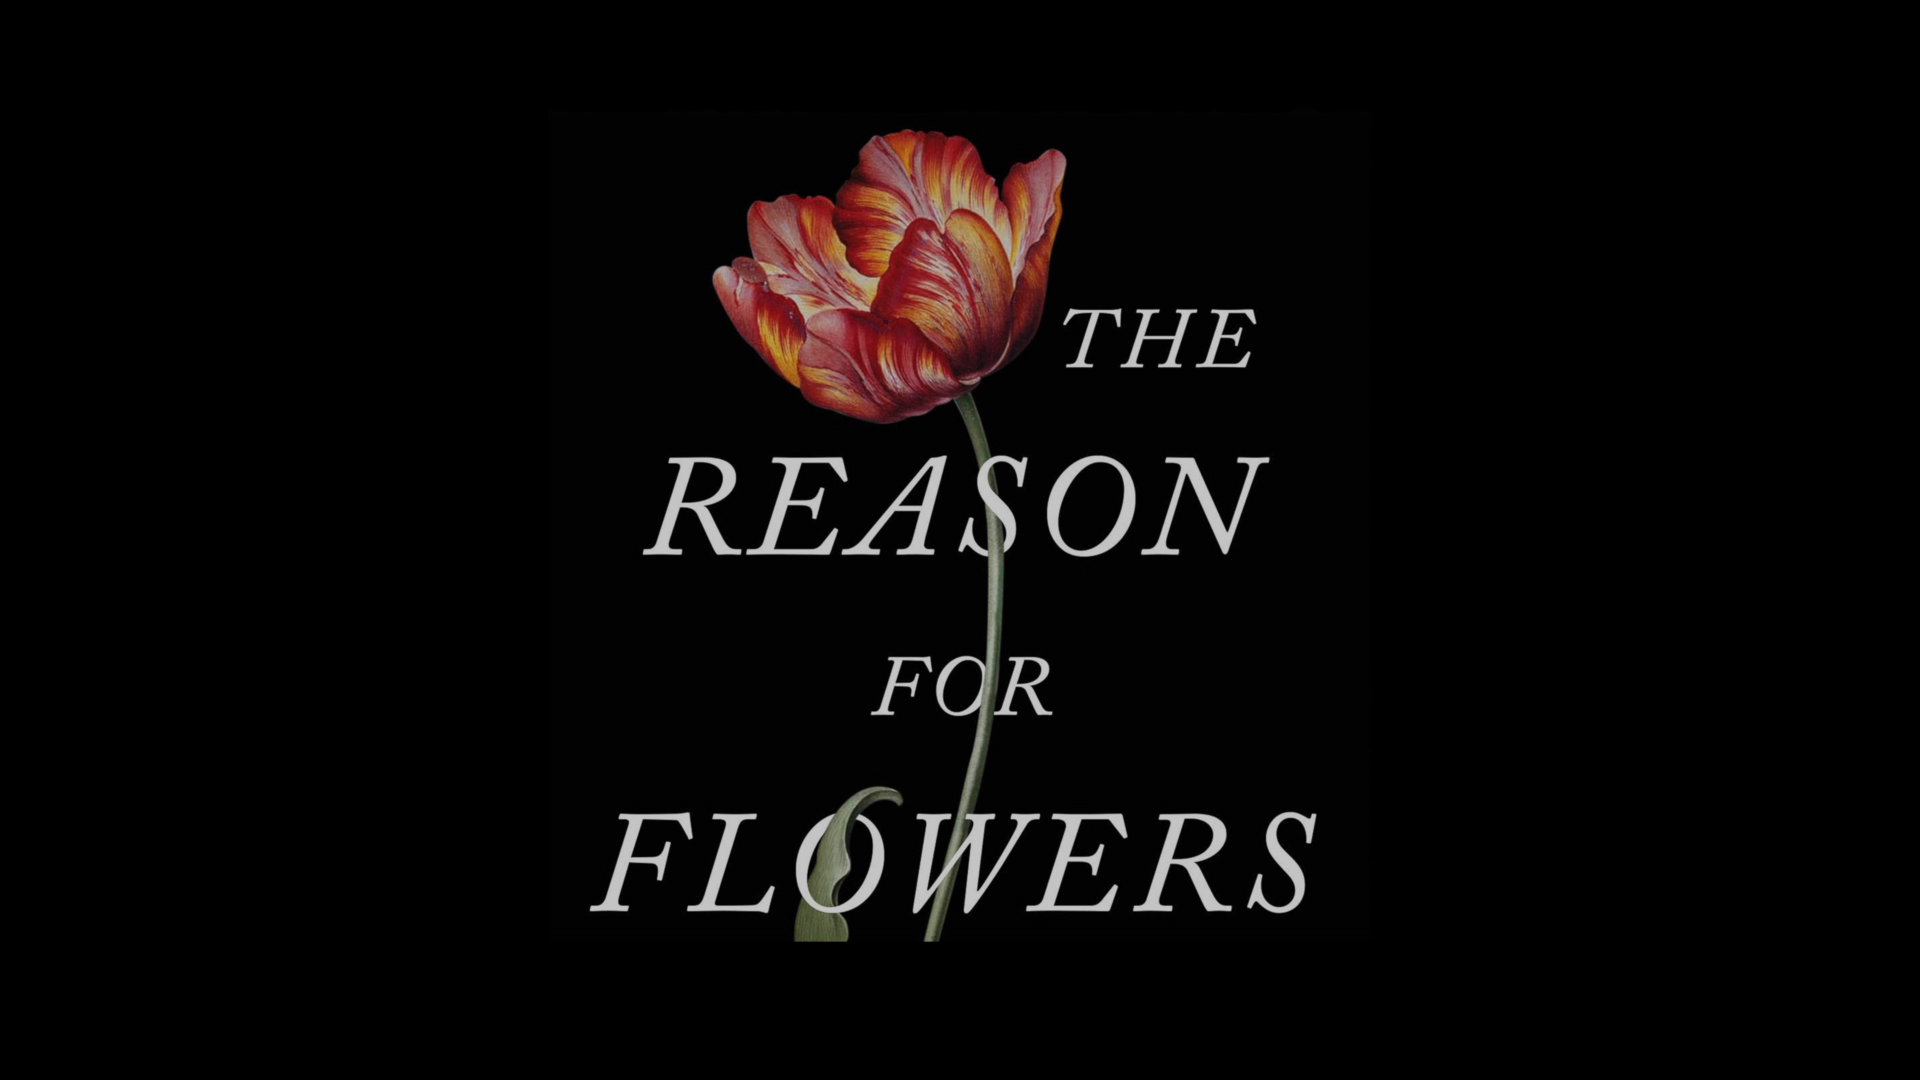 Author Stephen Buchmann investigates 'The Reason for Flowers'